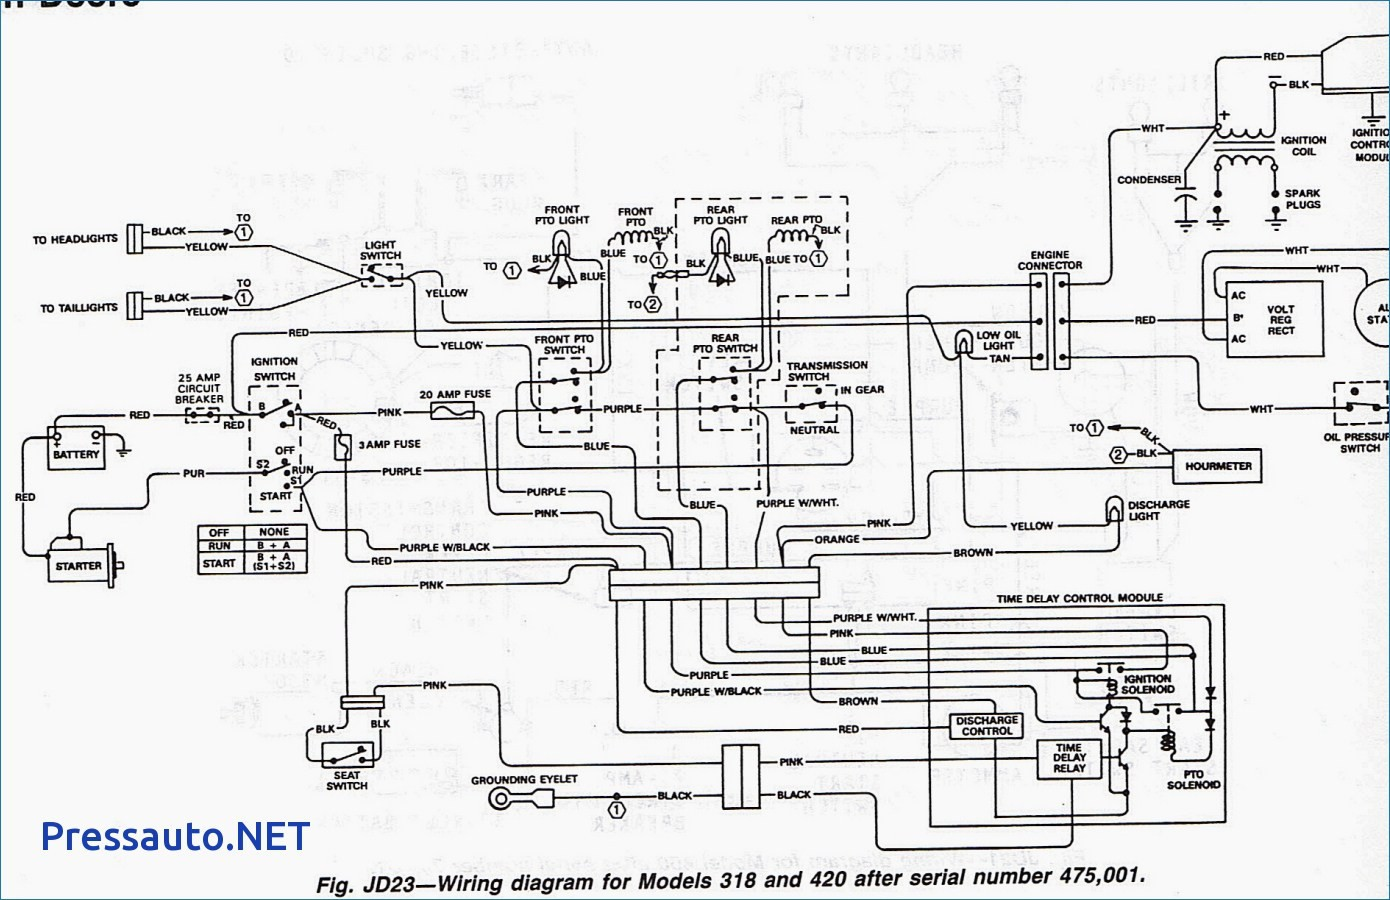 Wiring Diagram For John Deere | Wiring Diagram on john deere 318 wiring-diagram, john deere solenoid wiring diagram, john deere l118 wiring harness, john deere tractor wiring, john deere lawn tractors brand, john deere lt120 transmission, john deere z225 wiring harness, john deere lawn tractor electrical diagram, john deere ignition wiring diagram, john deere wiring harness diagram, john deere 130 wiring-diagram, john deere stx38 wiring-diagram, john deere parts diagrams, john deere lx255 wiring-diagram, john deere l120 diagrams, john deere 50 wiring diagram, john deere la120 belt diagram, john deere d160 wiring harness, john deere mower wiring diagram, john deere model a wiring diagram,